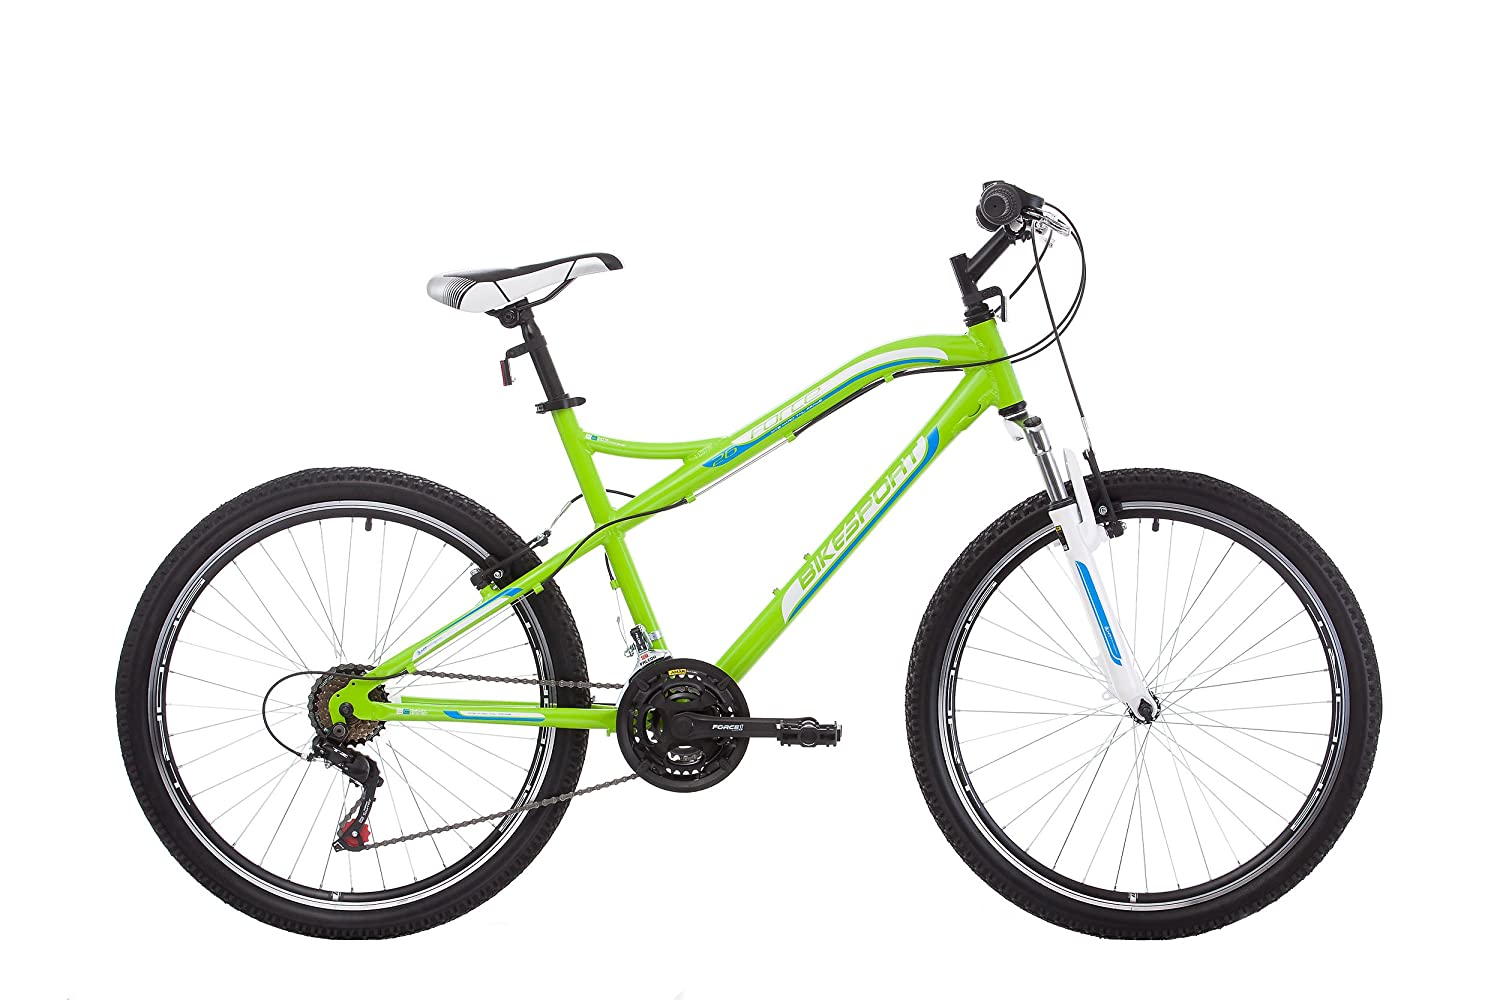 BIKE SPORT LIVE ACTIVE 26 Zoll Bikesport Force Herren Fahrrad Mountainbike Shimano 21 Gang